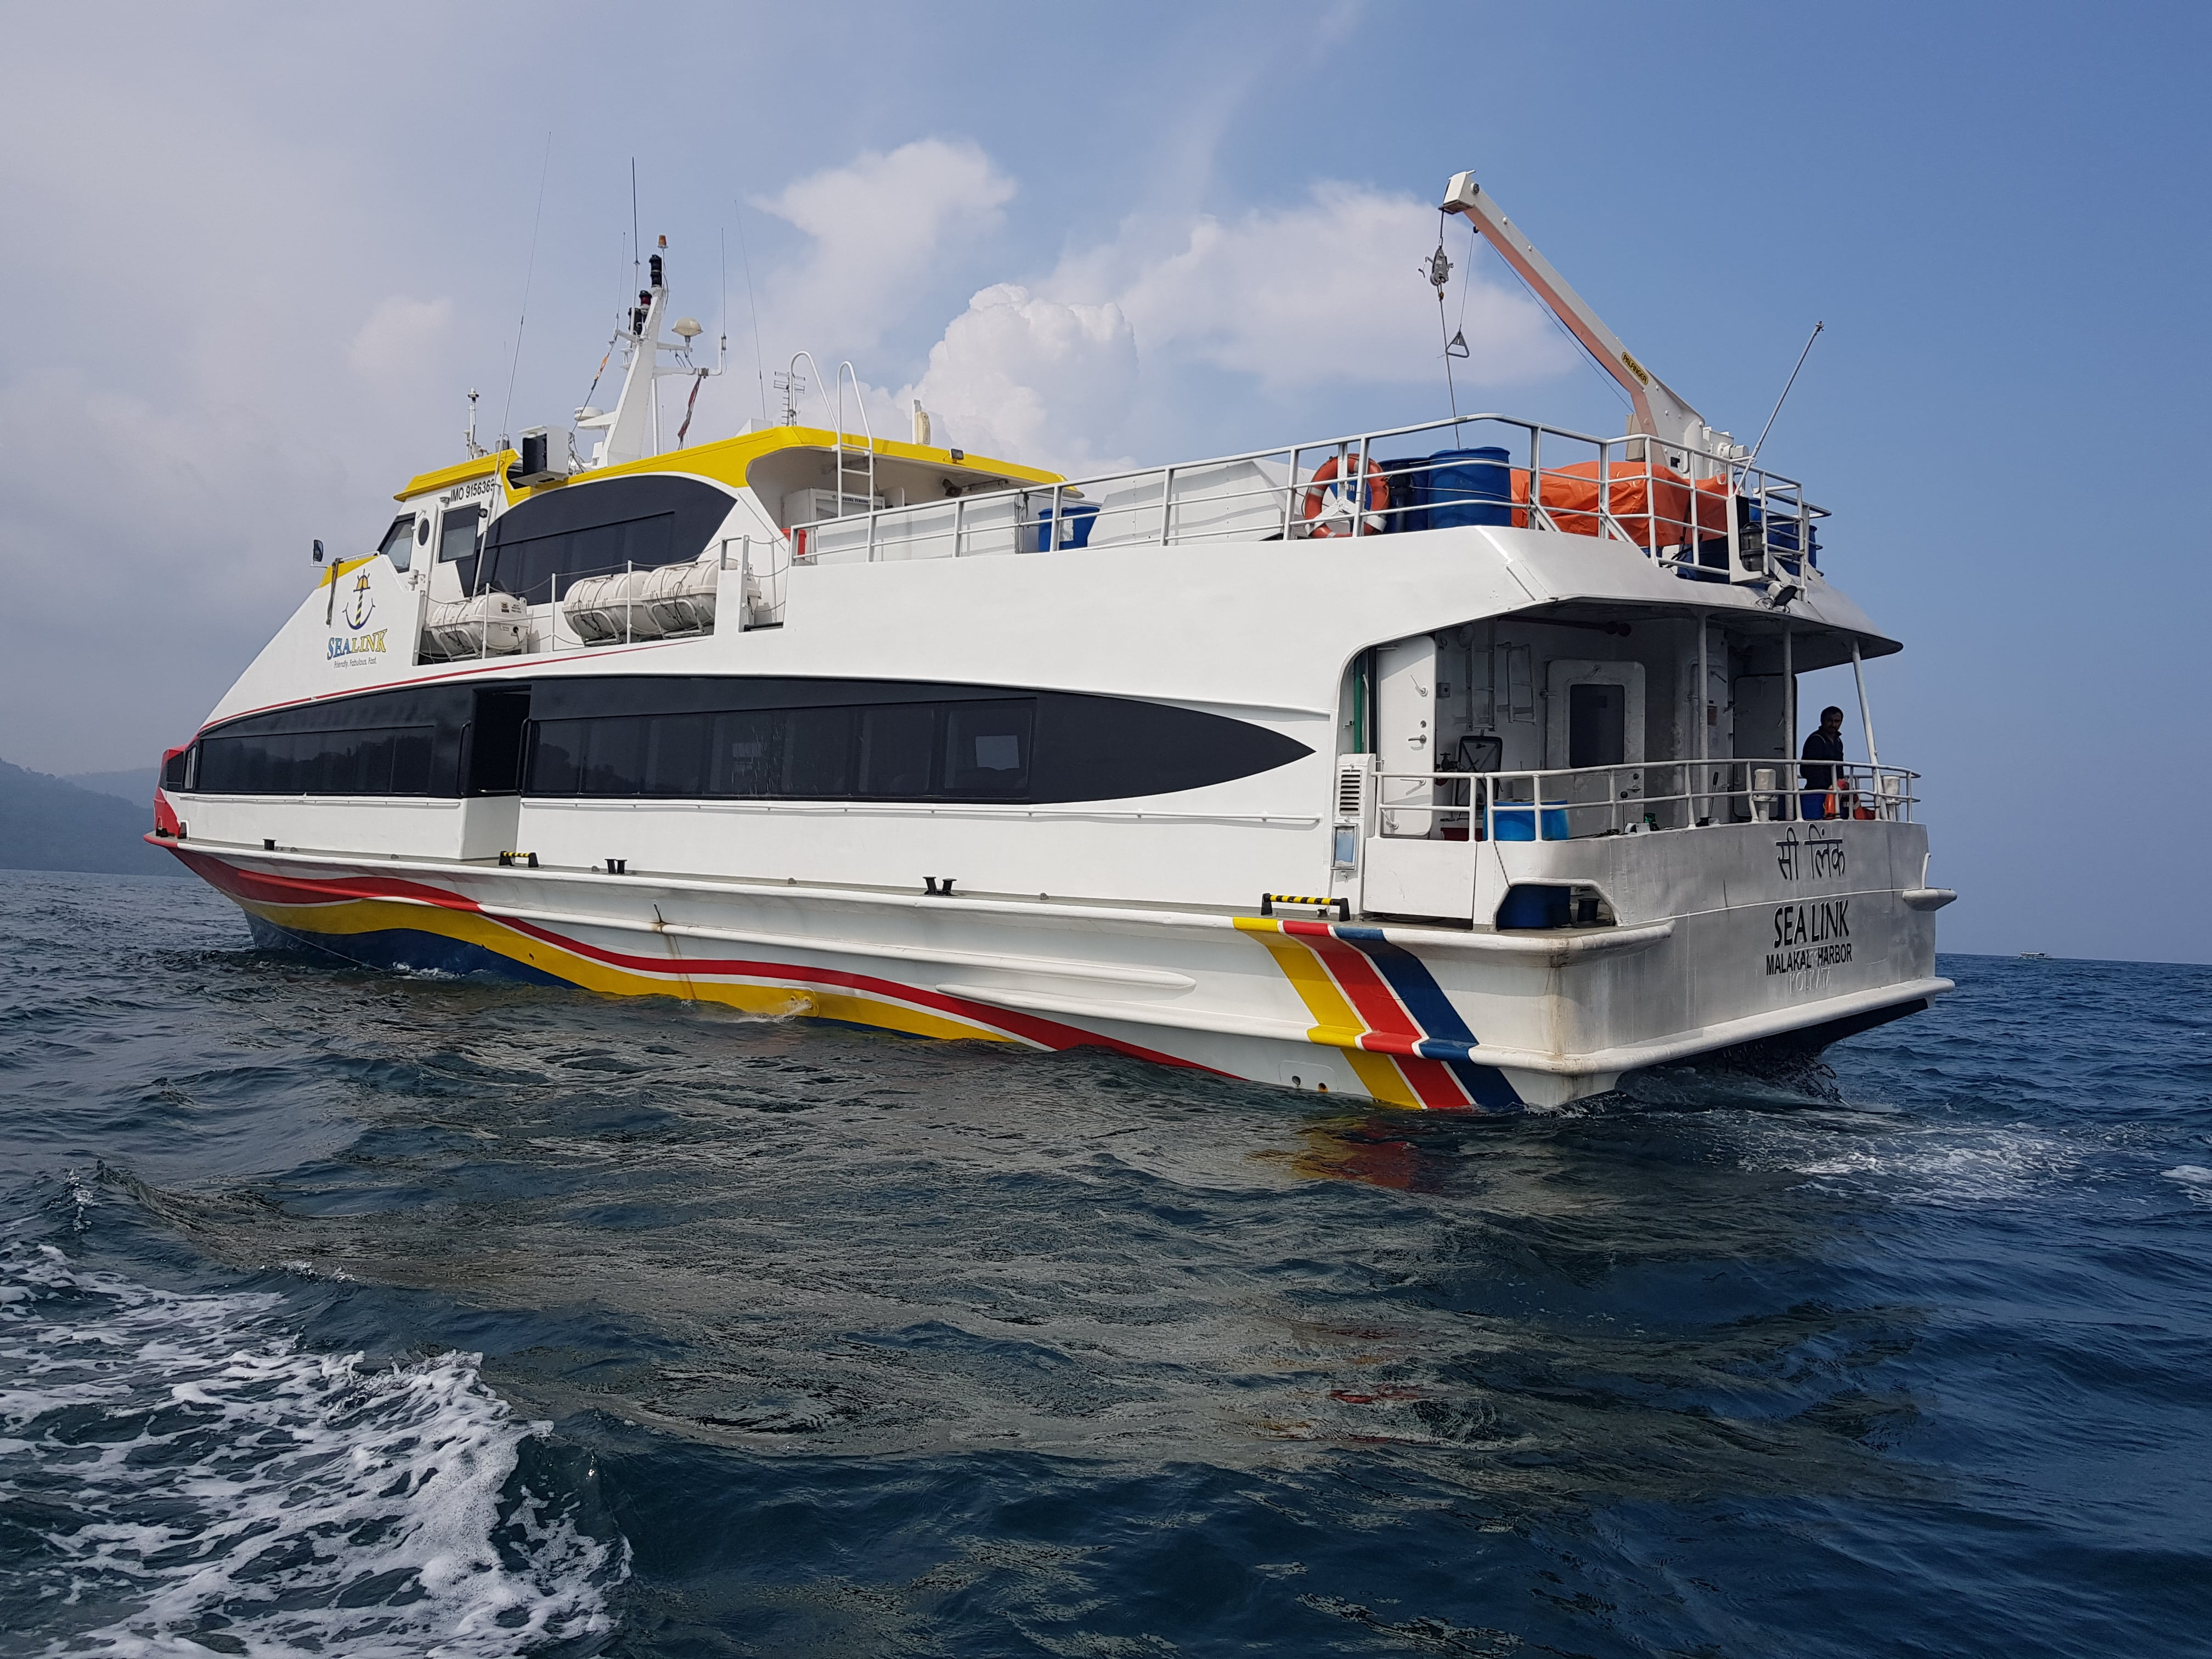 Sea Link Cruise Online Booking Schedule Tickets And Rates Andaman Bluebay Holidays